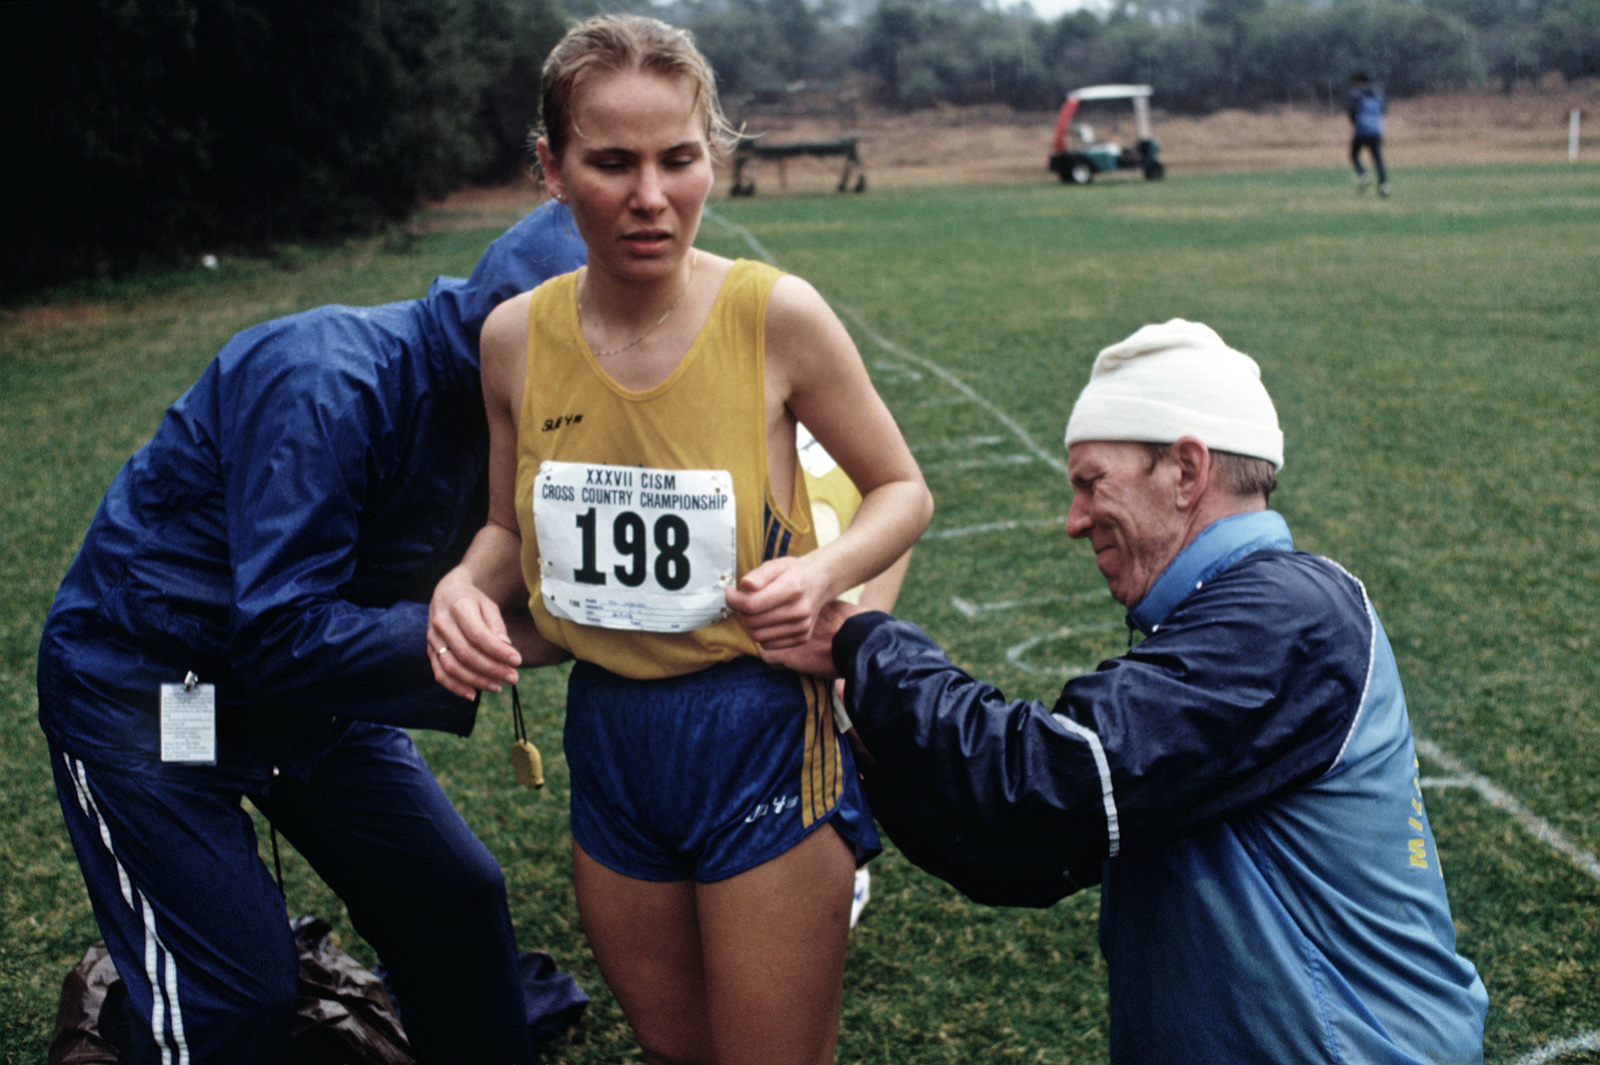 Asa Jonson of Sweden is assisted with the application of her numerals before her race during the 1988 Conseil International Du Sport Militaire's Cross Country Championship (CISM)